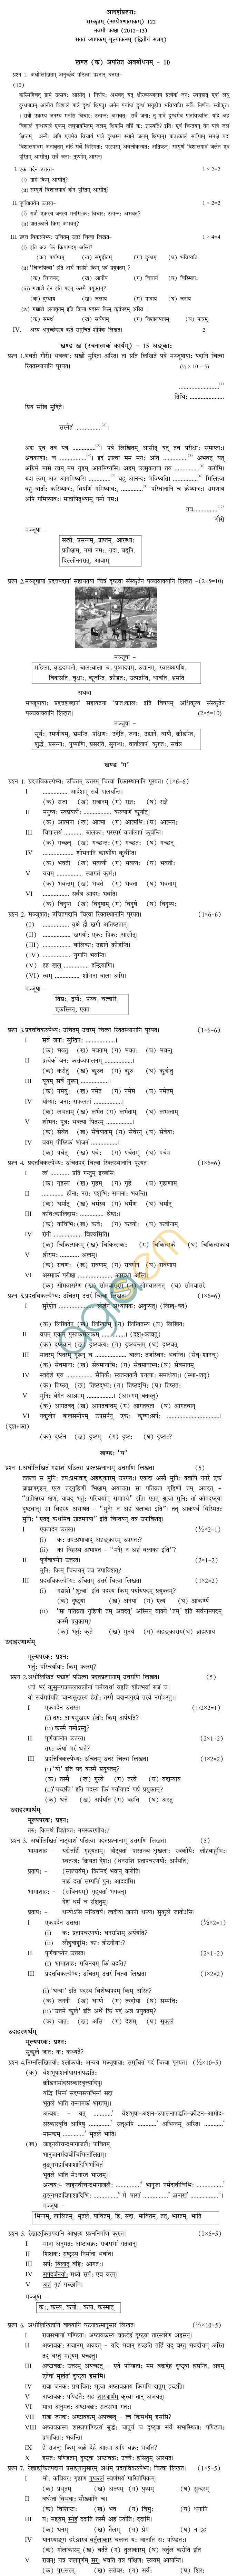 CBSE Board Exam Sample Papers (SA2) Class IX - Sanskrit